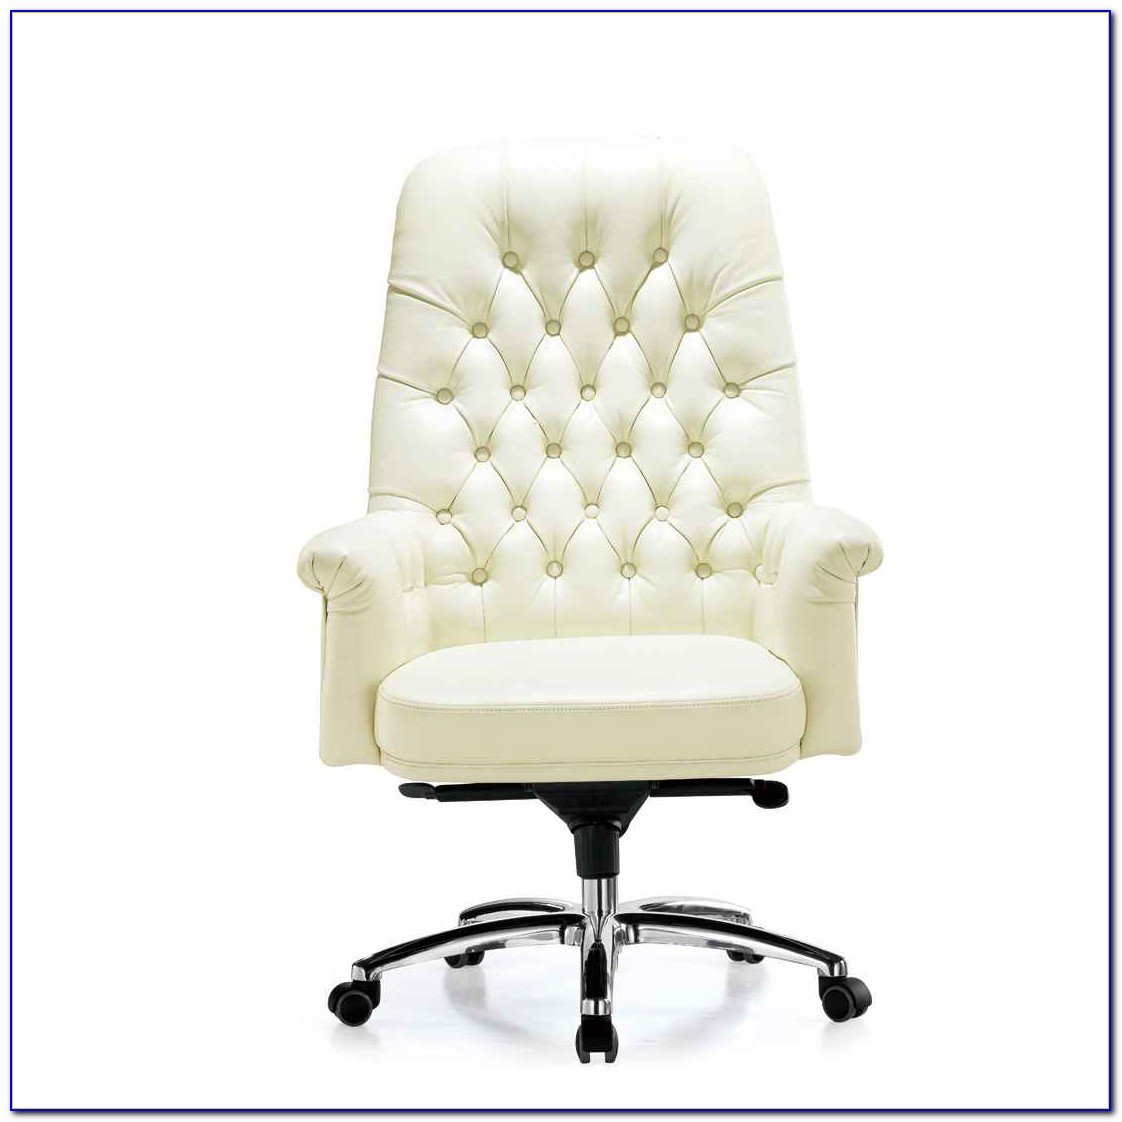 White Wooden Desk Chair With Wheels